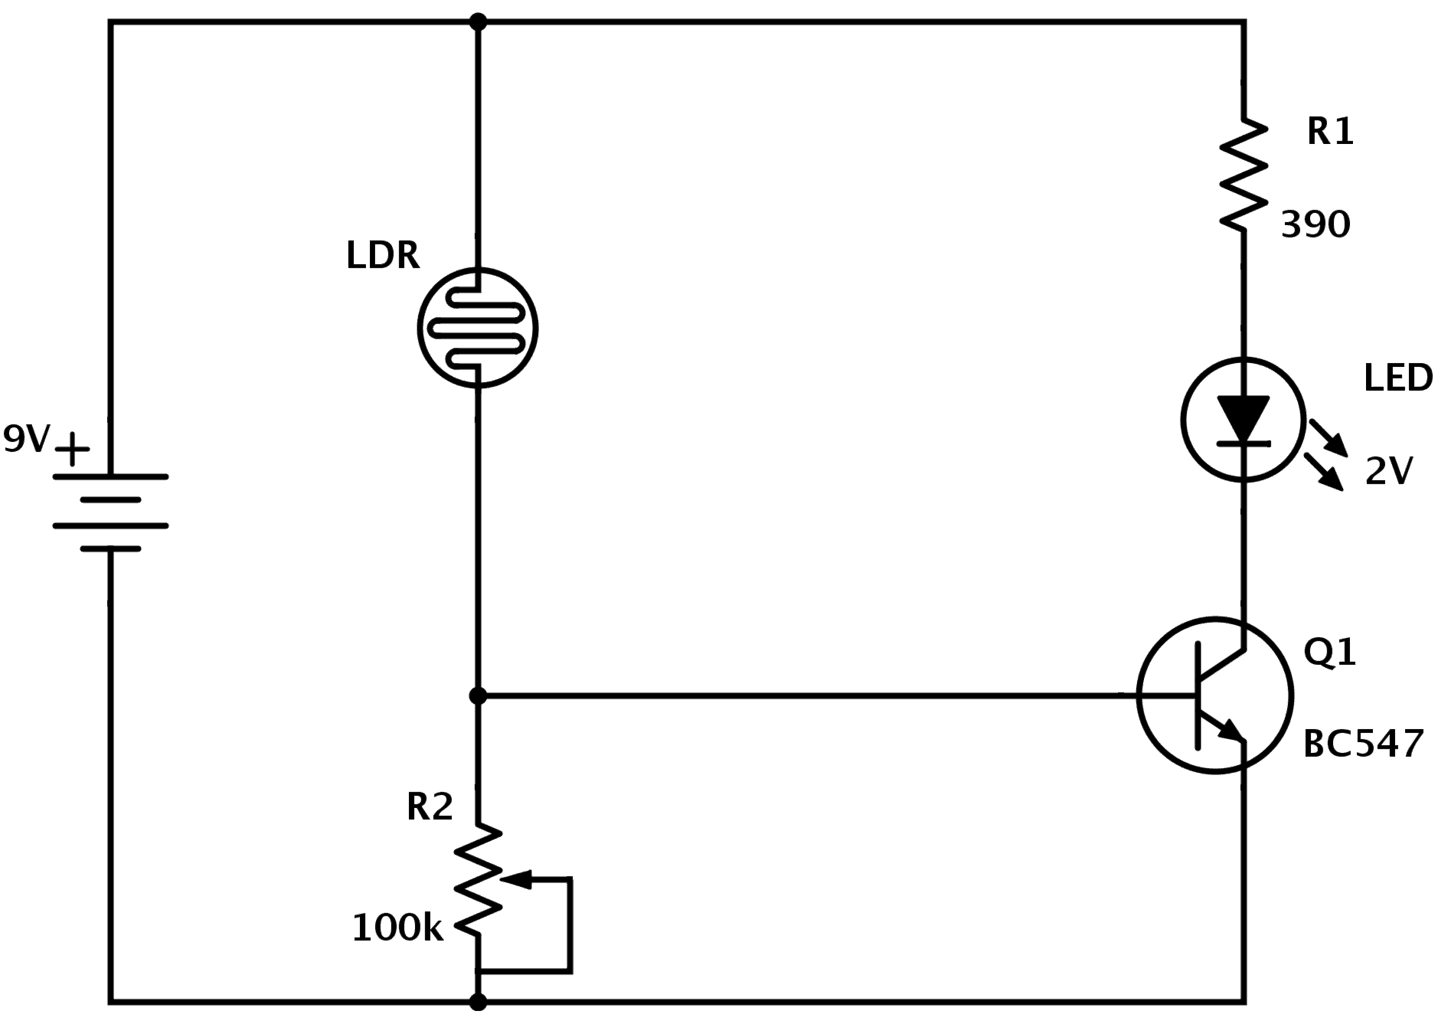 Circuit Diagram How To Read And Understand Any Schematic Dc Motor Wiring Free Download Ldr